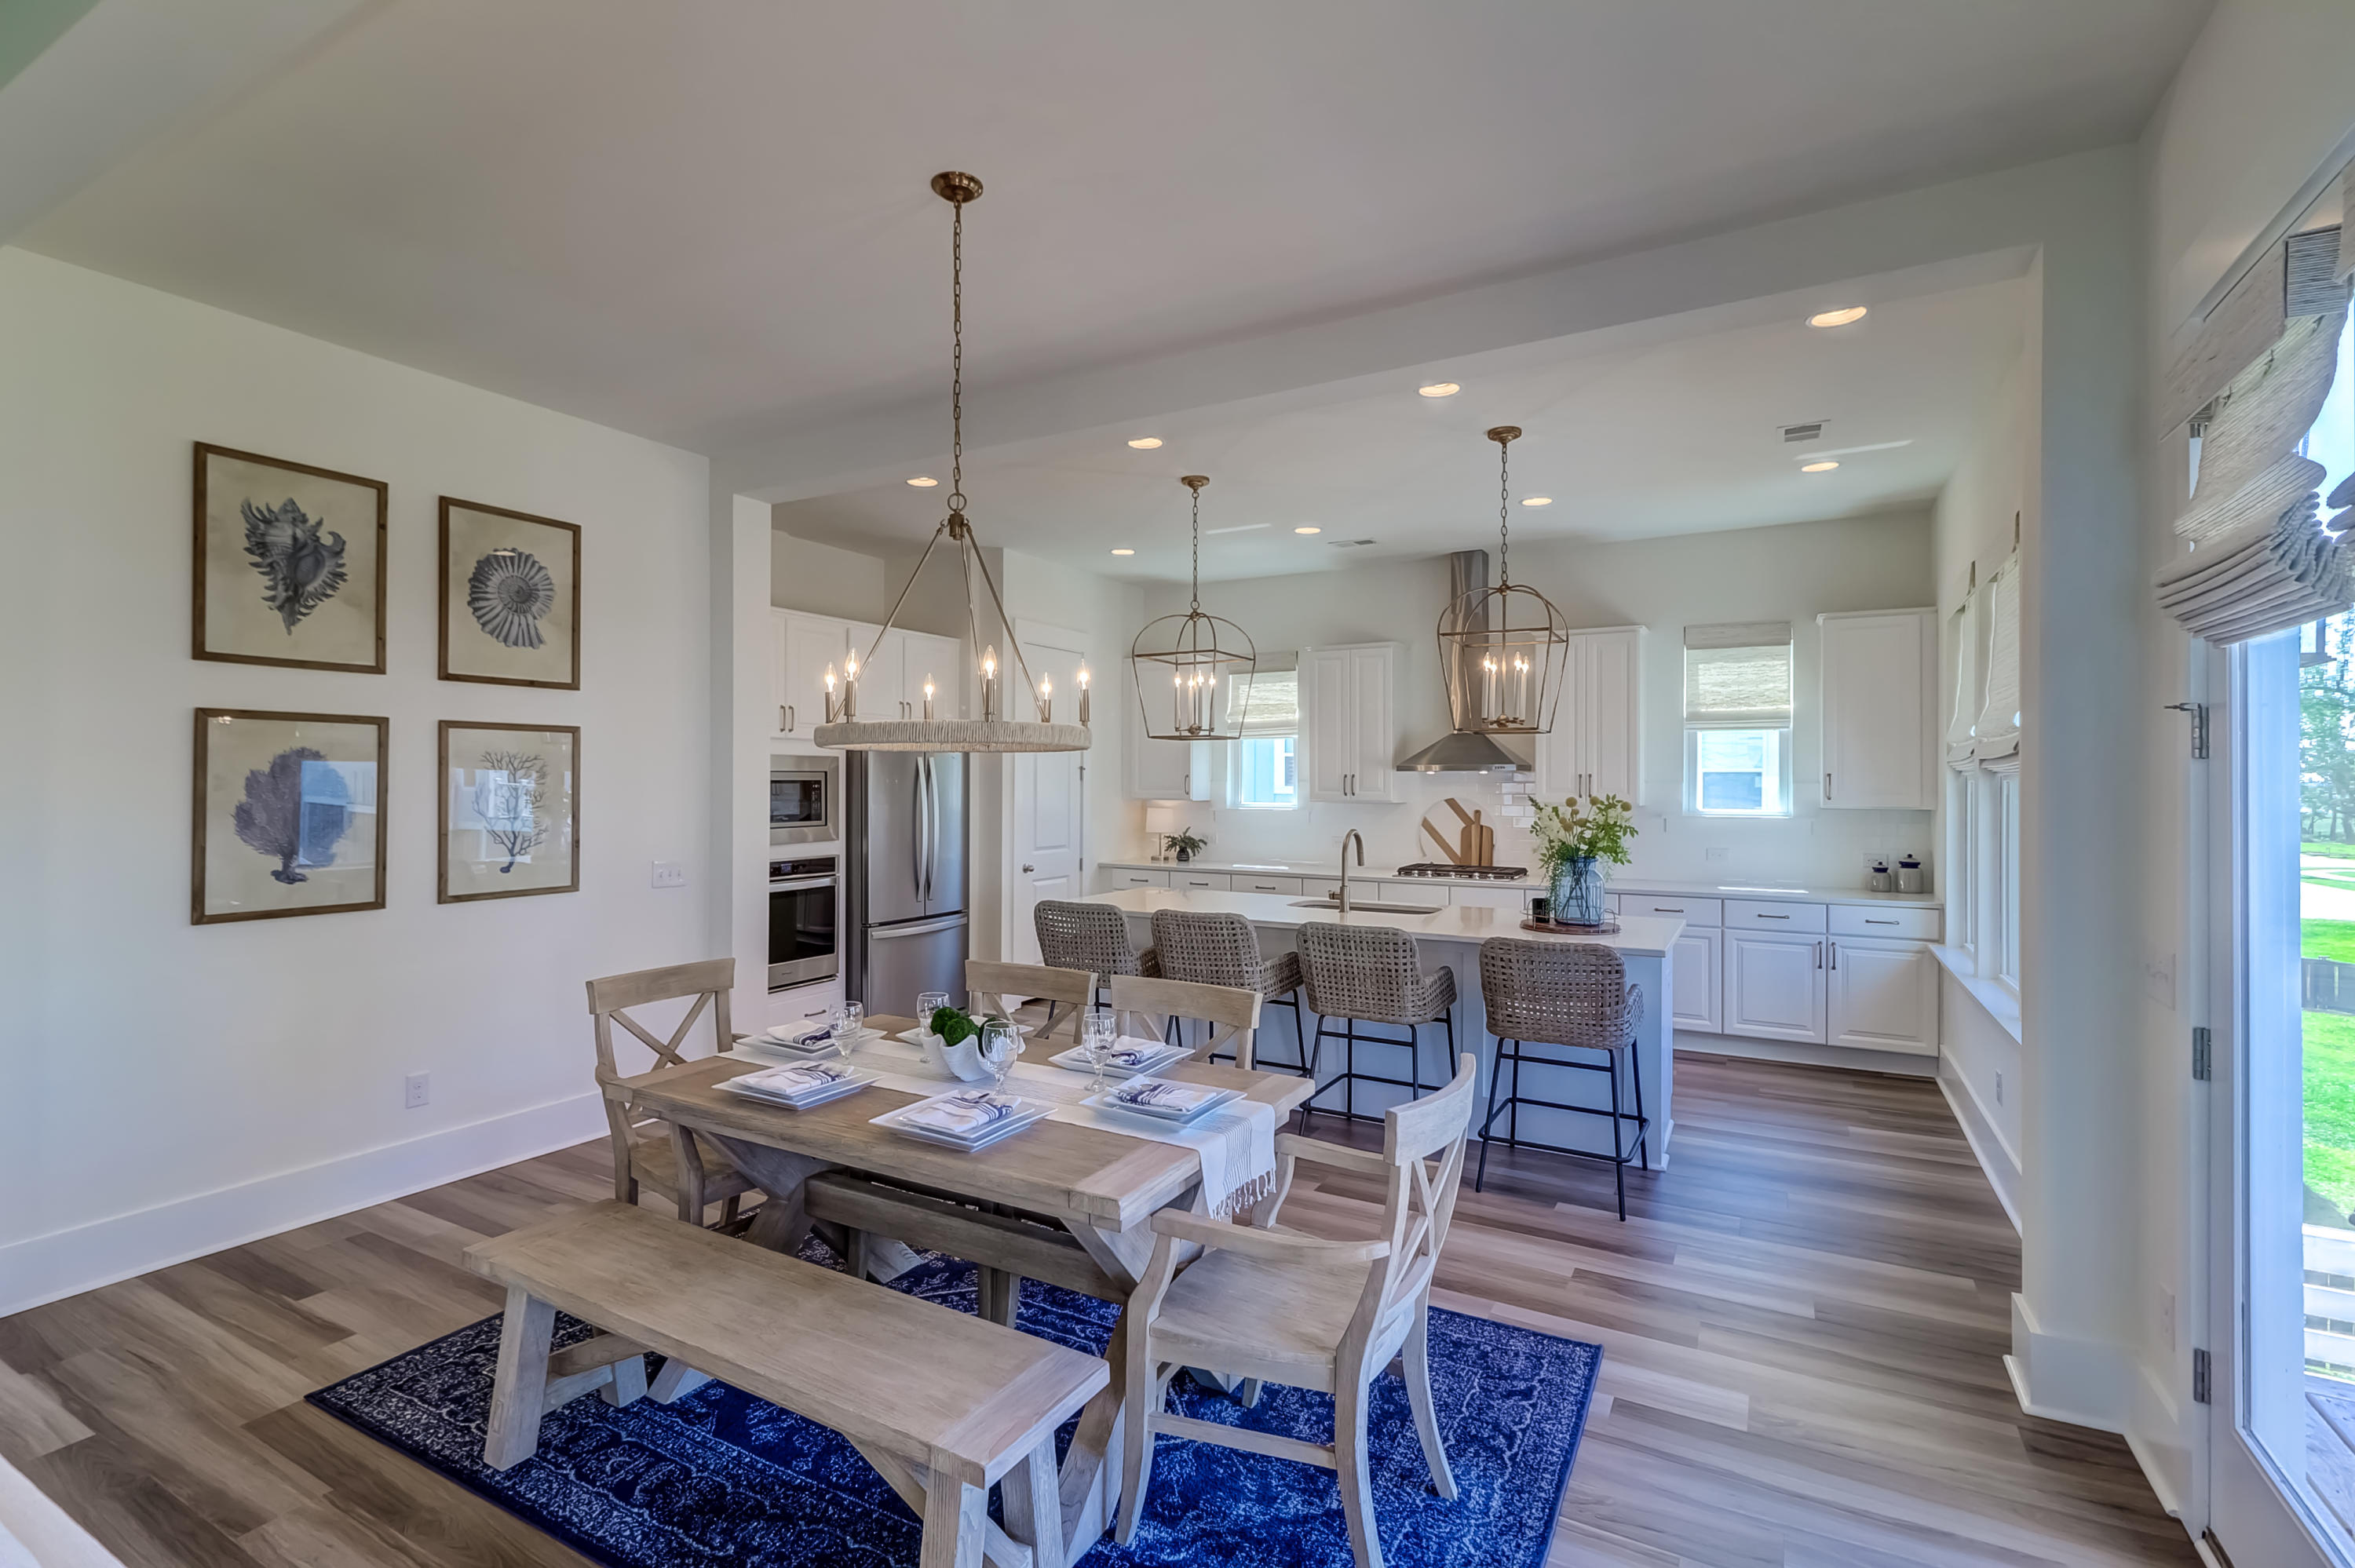 Stratton by the Sound Homes For Sale - 3609 Tidal Flat, Mount Pleasant, SC - 15